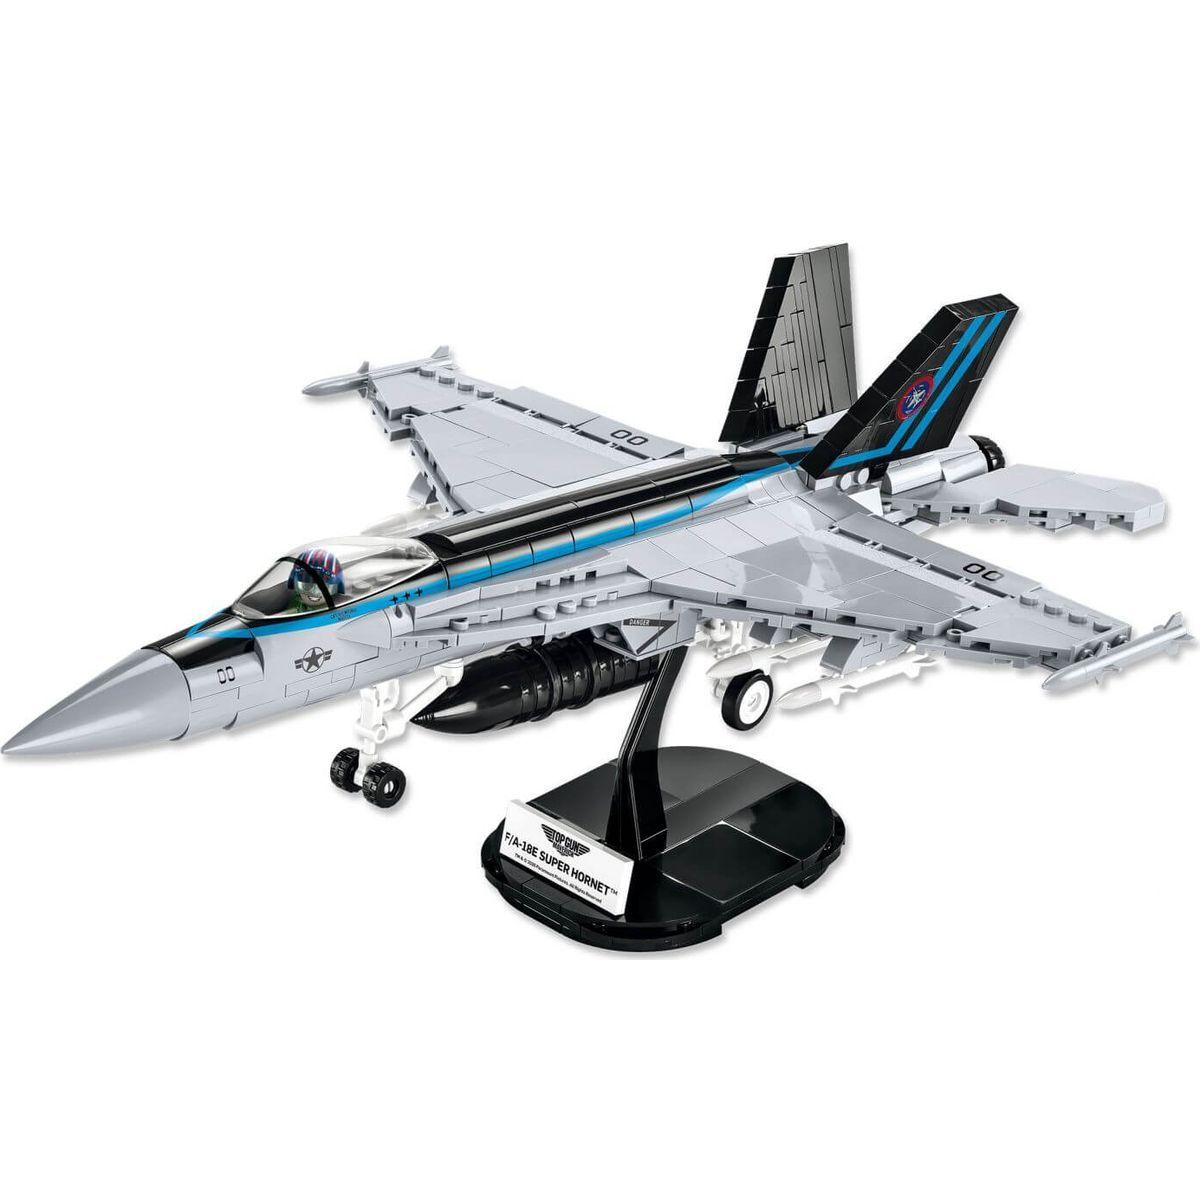 Cobi 5805 Top Gun FA-18E Super Hornet 1:48